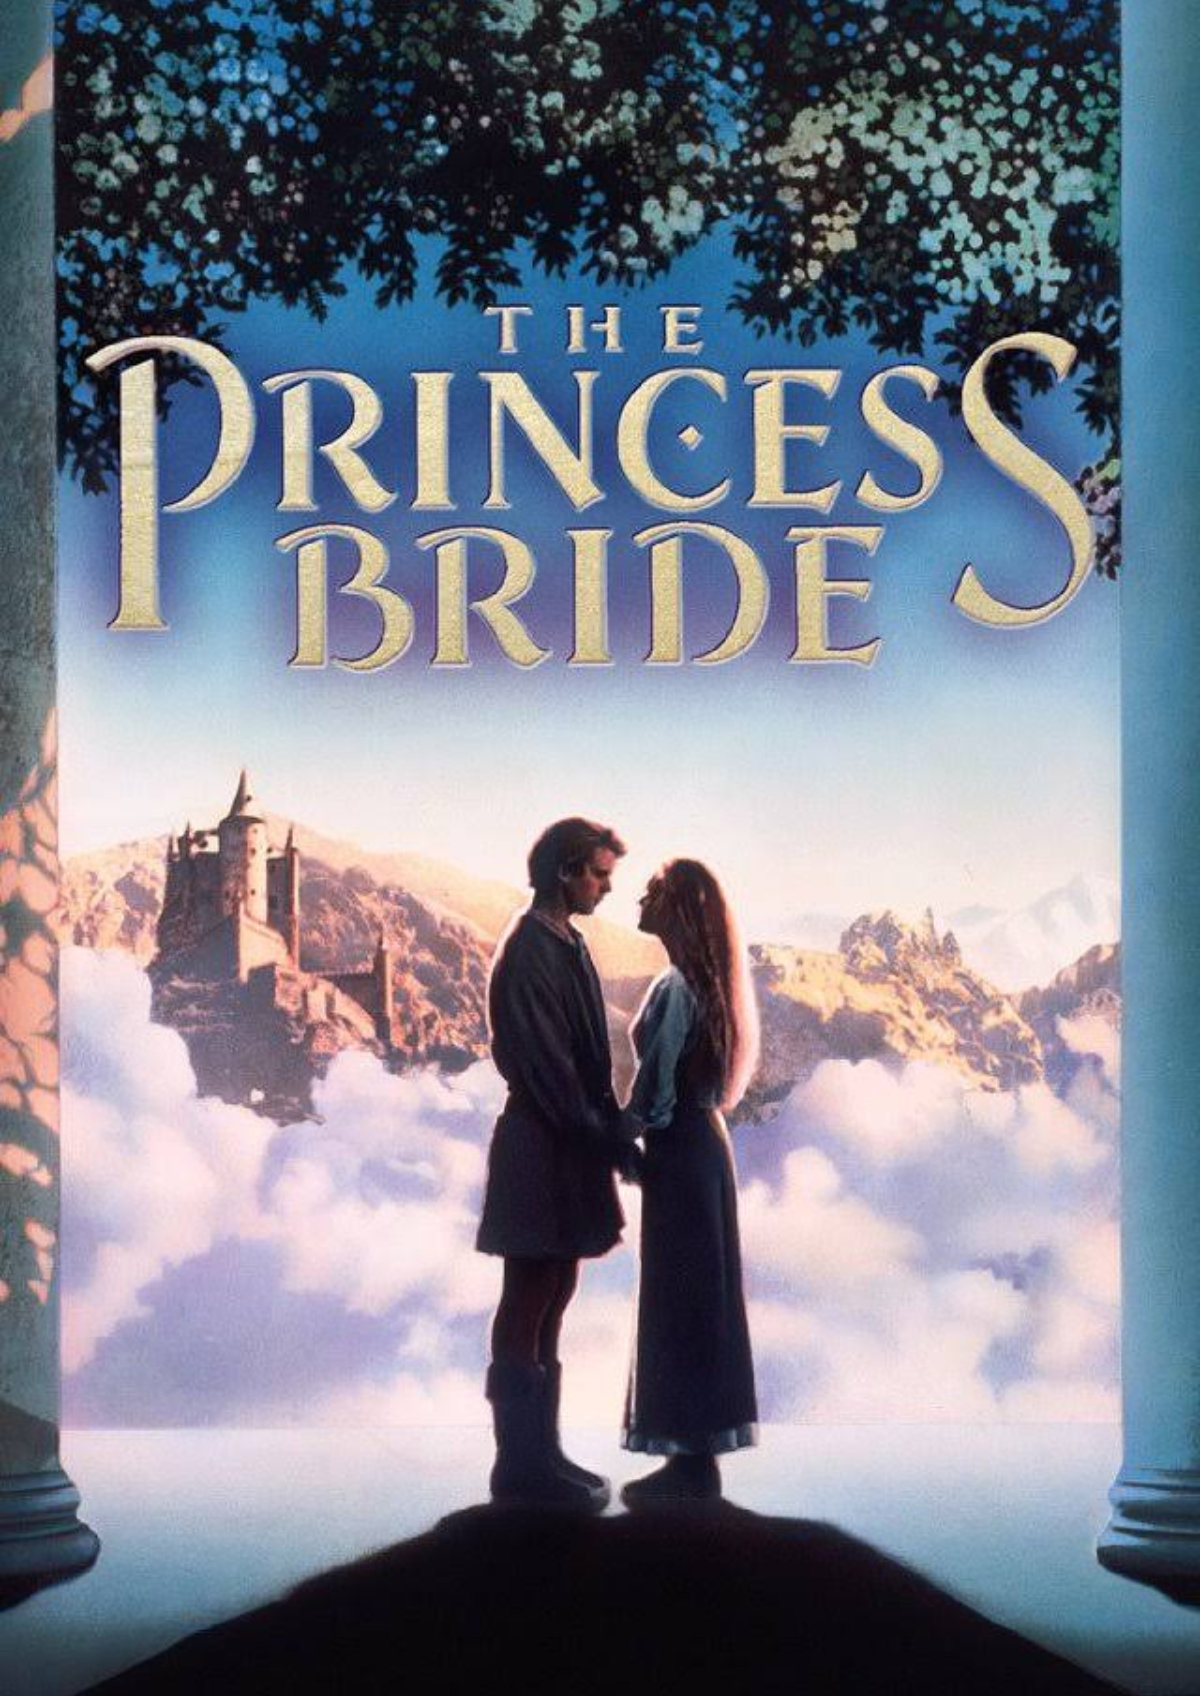 'The Princess Bride' movie poster